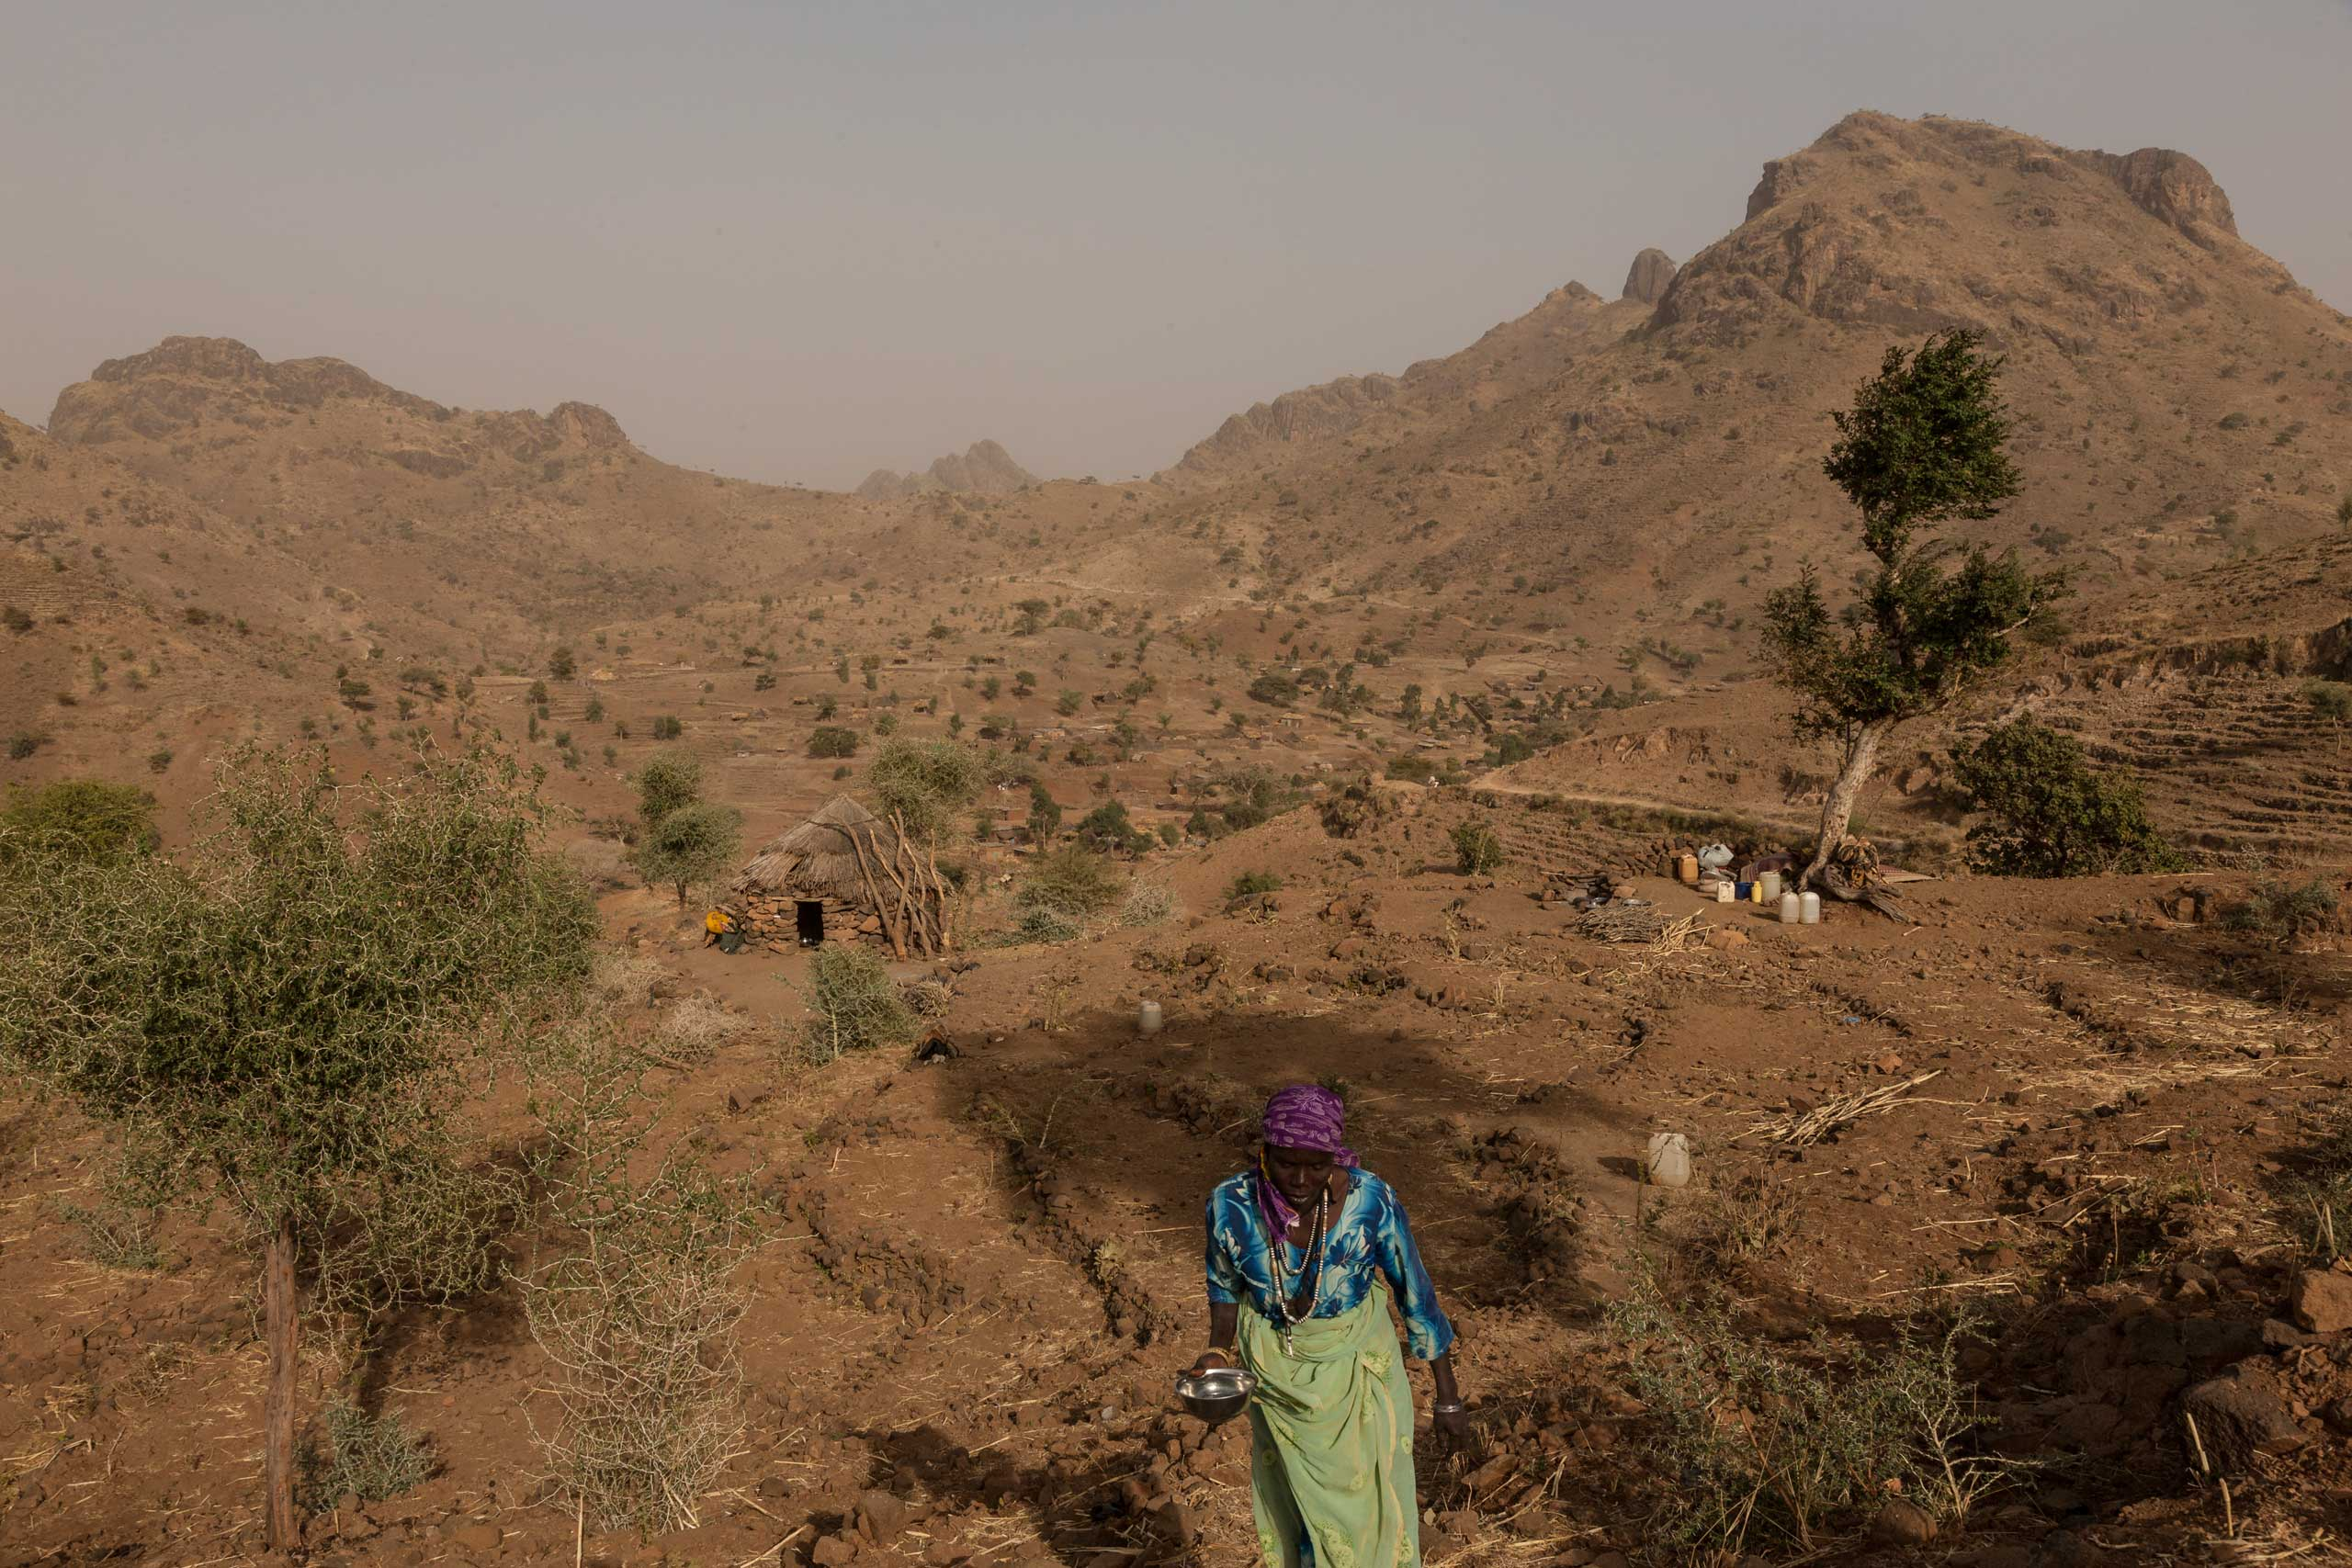 After fleeing a ground attack on the town of Golo on Jan. 24, a woman carries a bowl of water up the mountain from where she lives under a tree outside of Kome in Central Darfur, Sudan, Feb. 28, 2015.